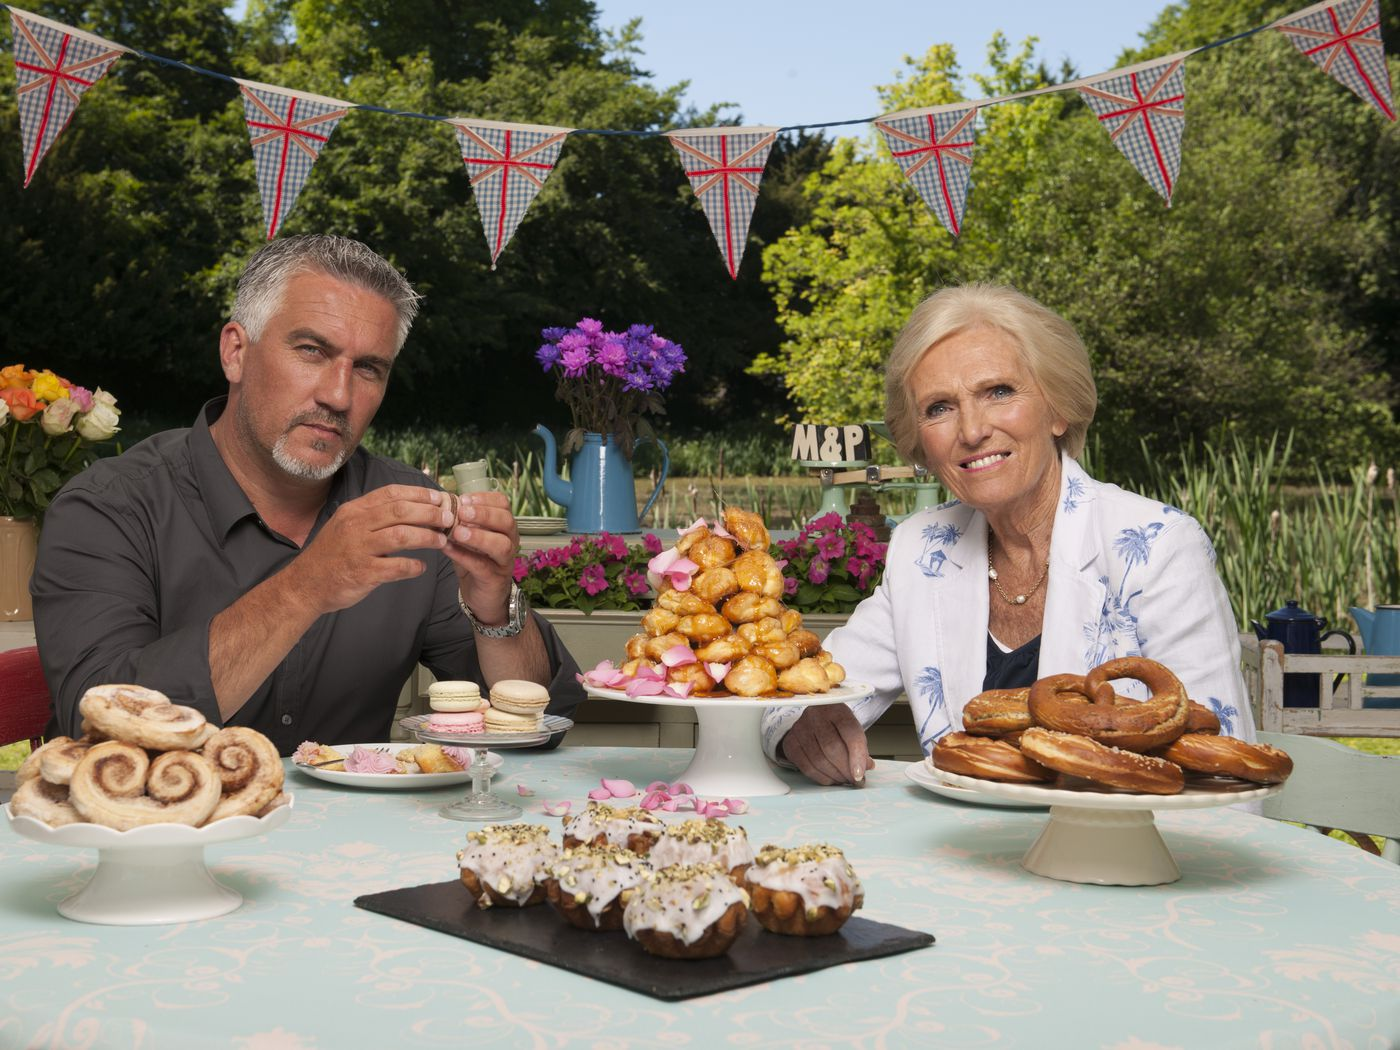 The Great British Baking Show comes back July 1  Its timing